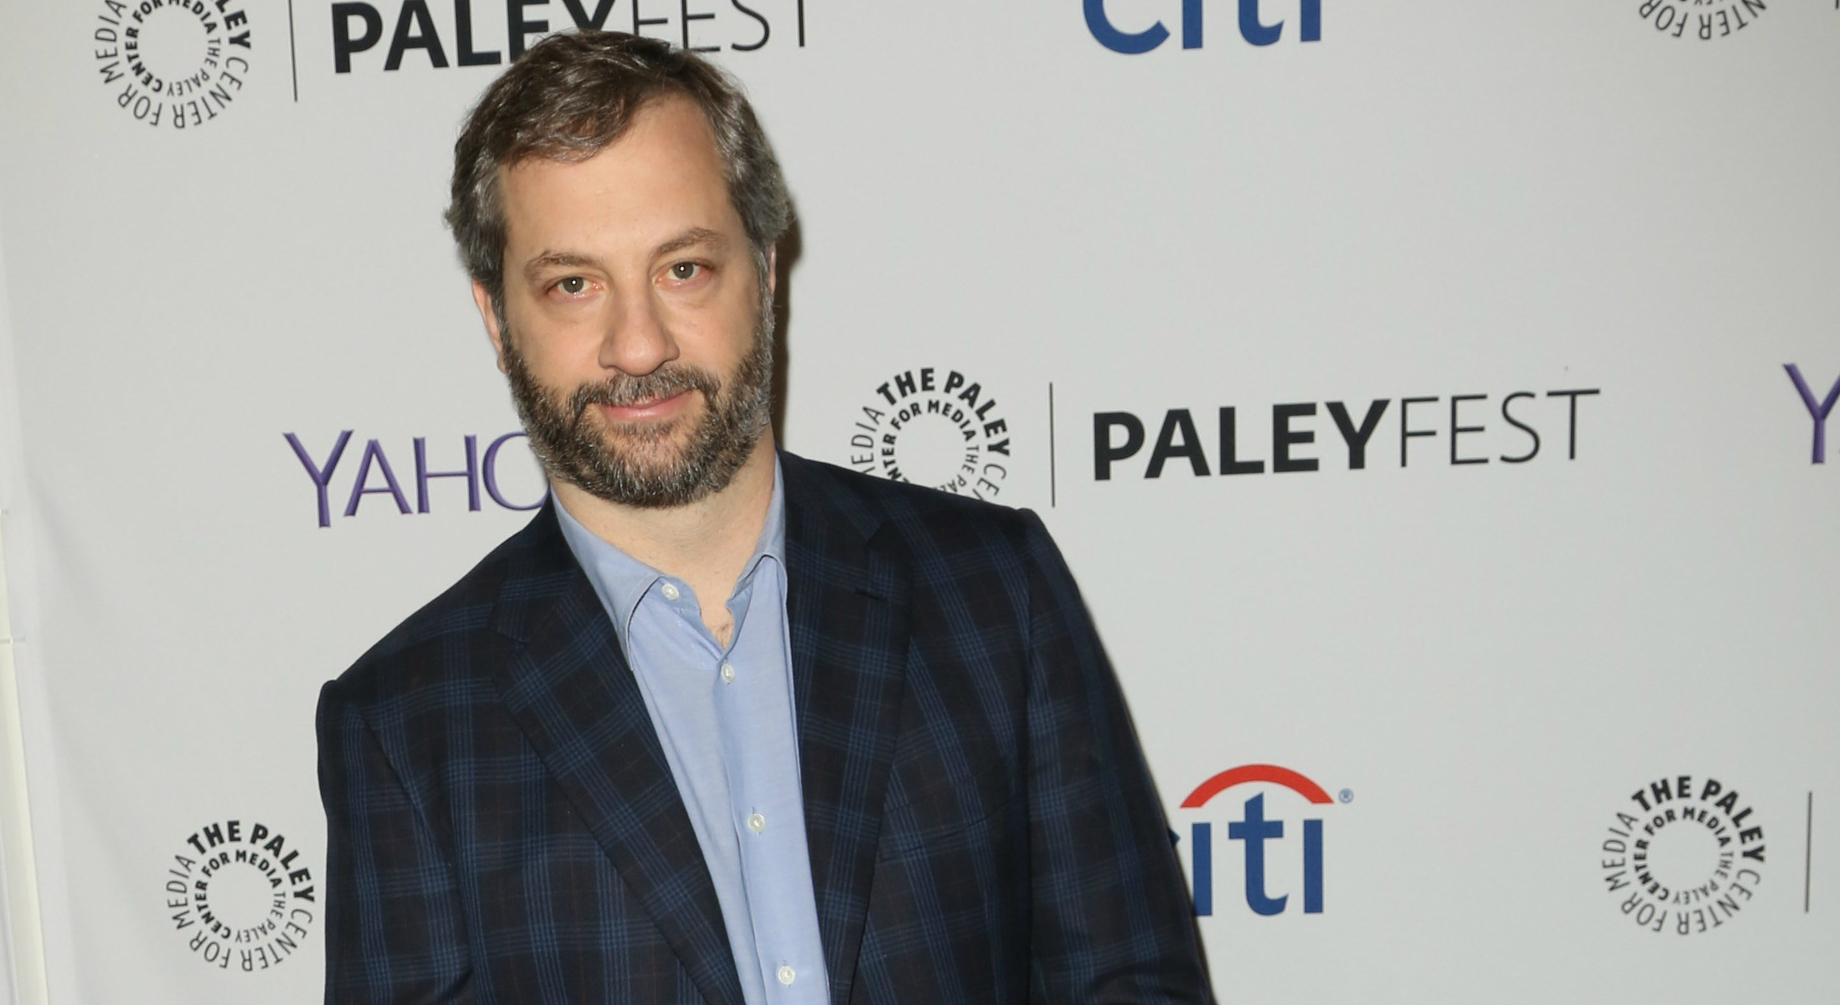 Judd Apatow's Love: 7 Things to know about his new Netflix